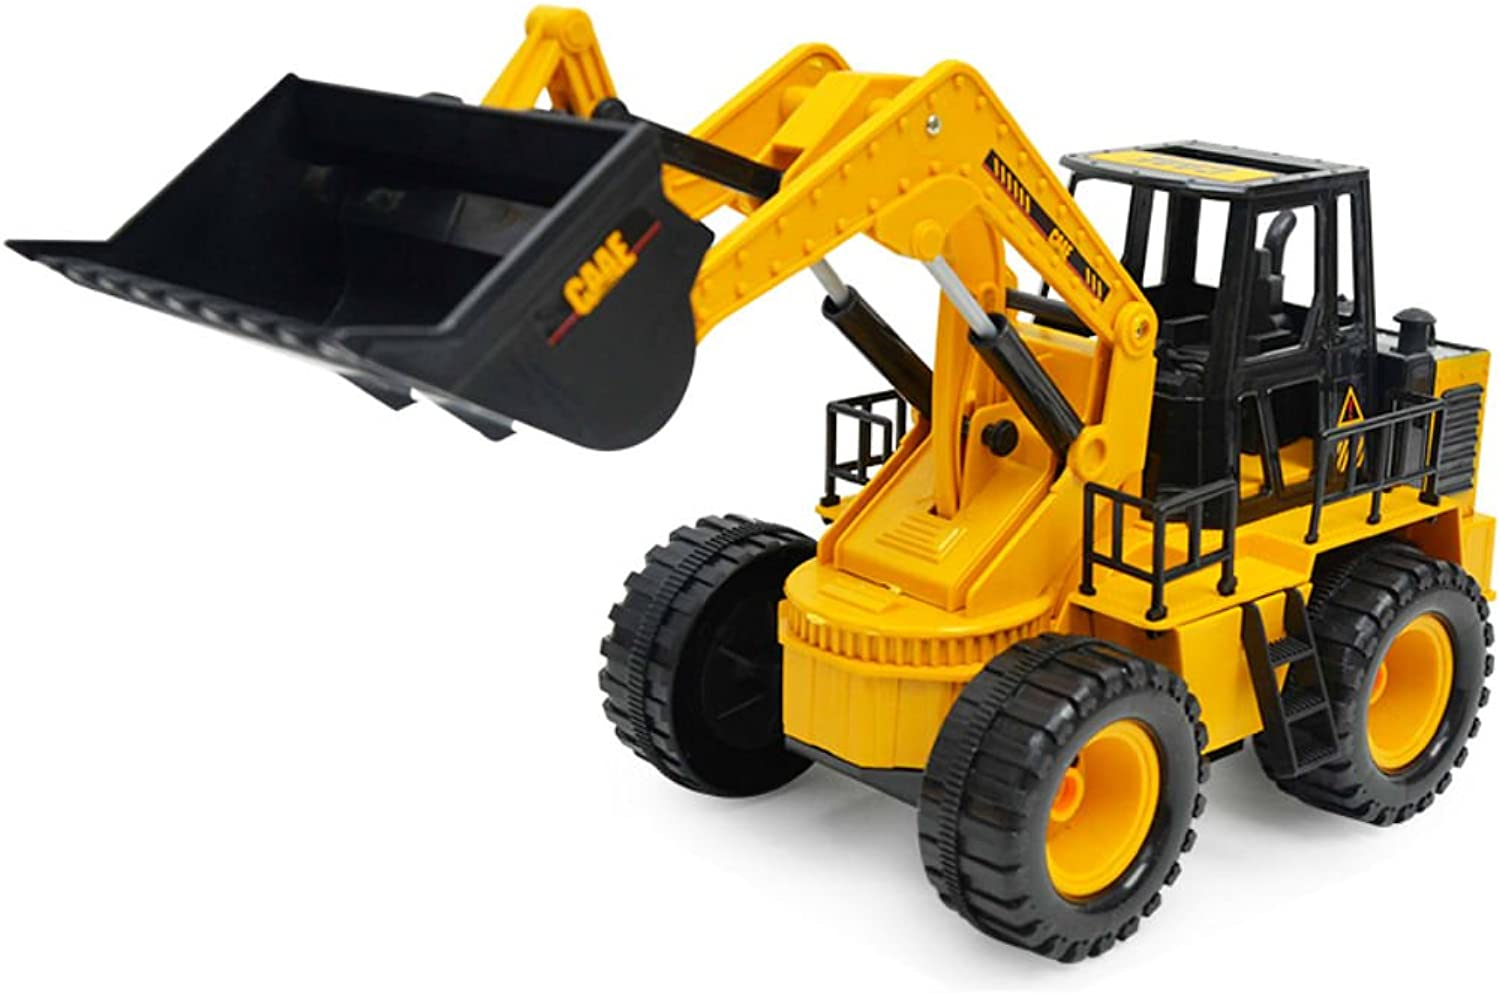 BAOBLADE 1 24 Battery Powered Electric RC Bulldozer Construction Tractor Educational Toys for Kids Boys